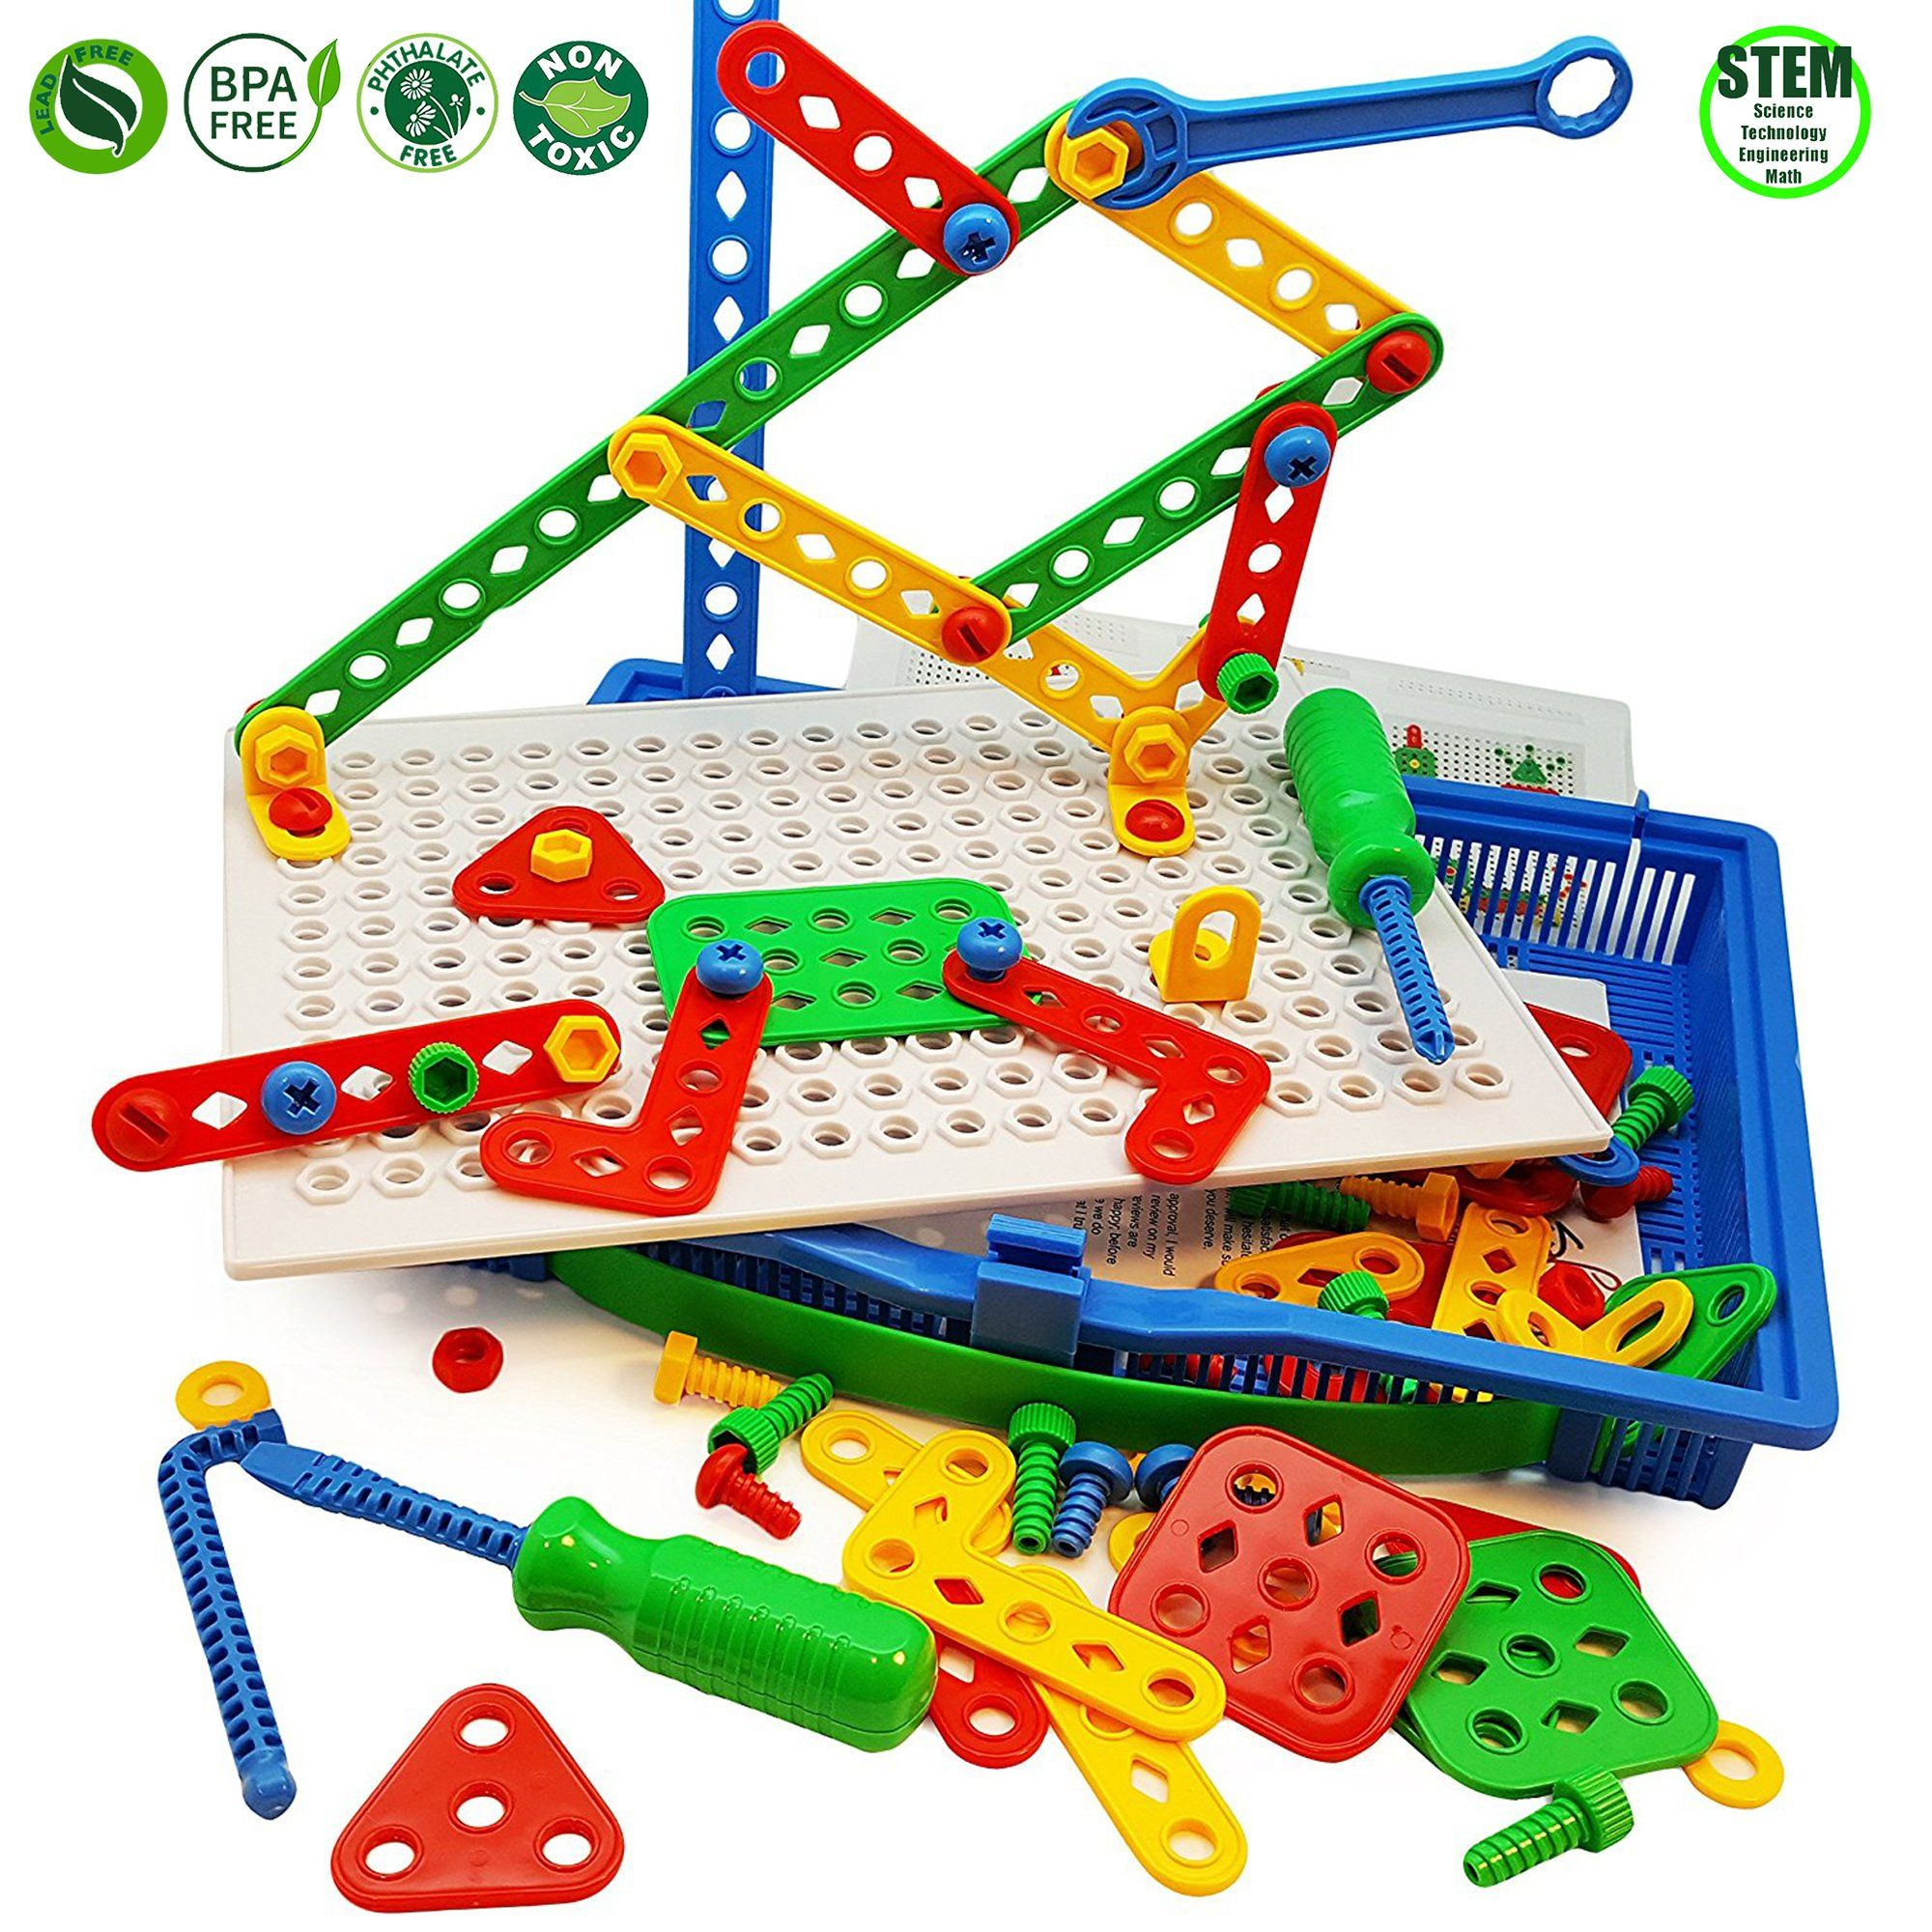 Imagination Creative Building Blocks Assembly Construction Toy Screws Nuts Tools